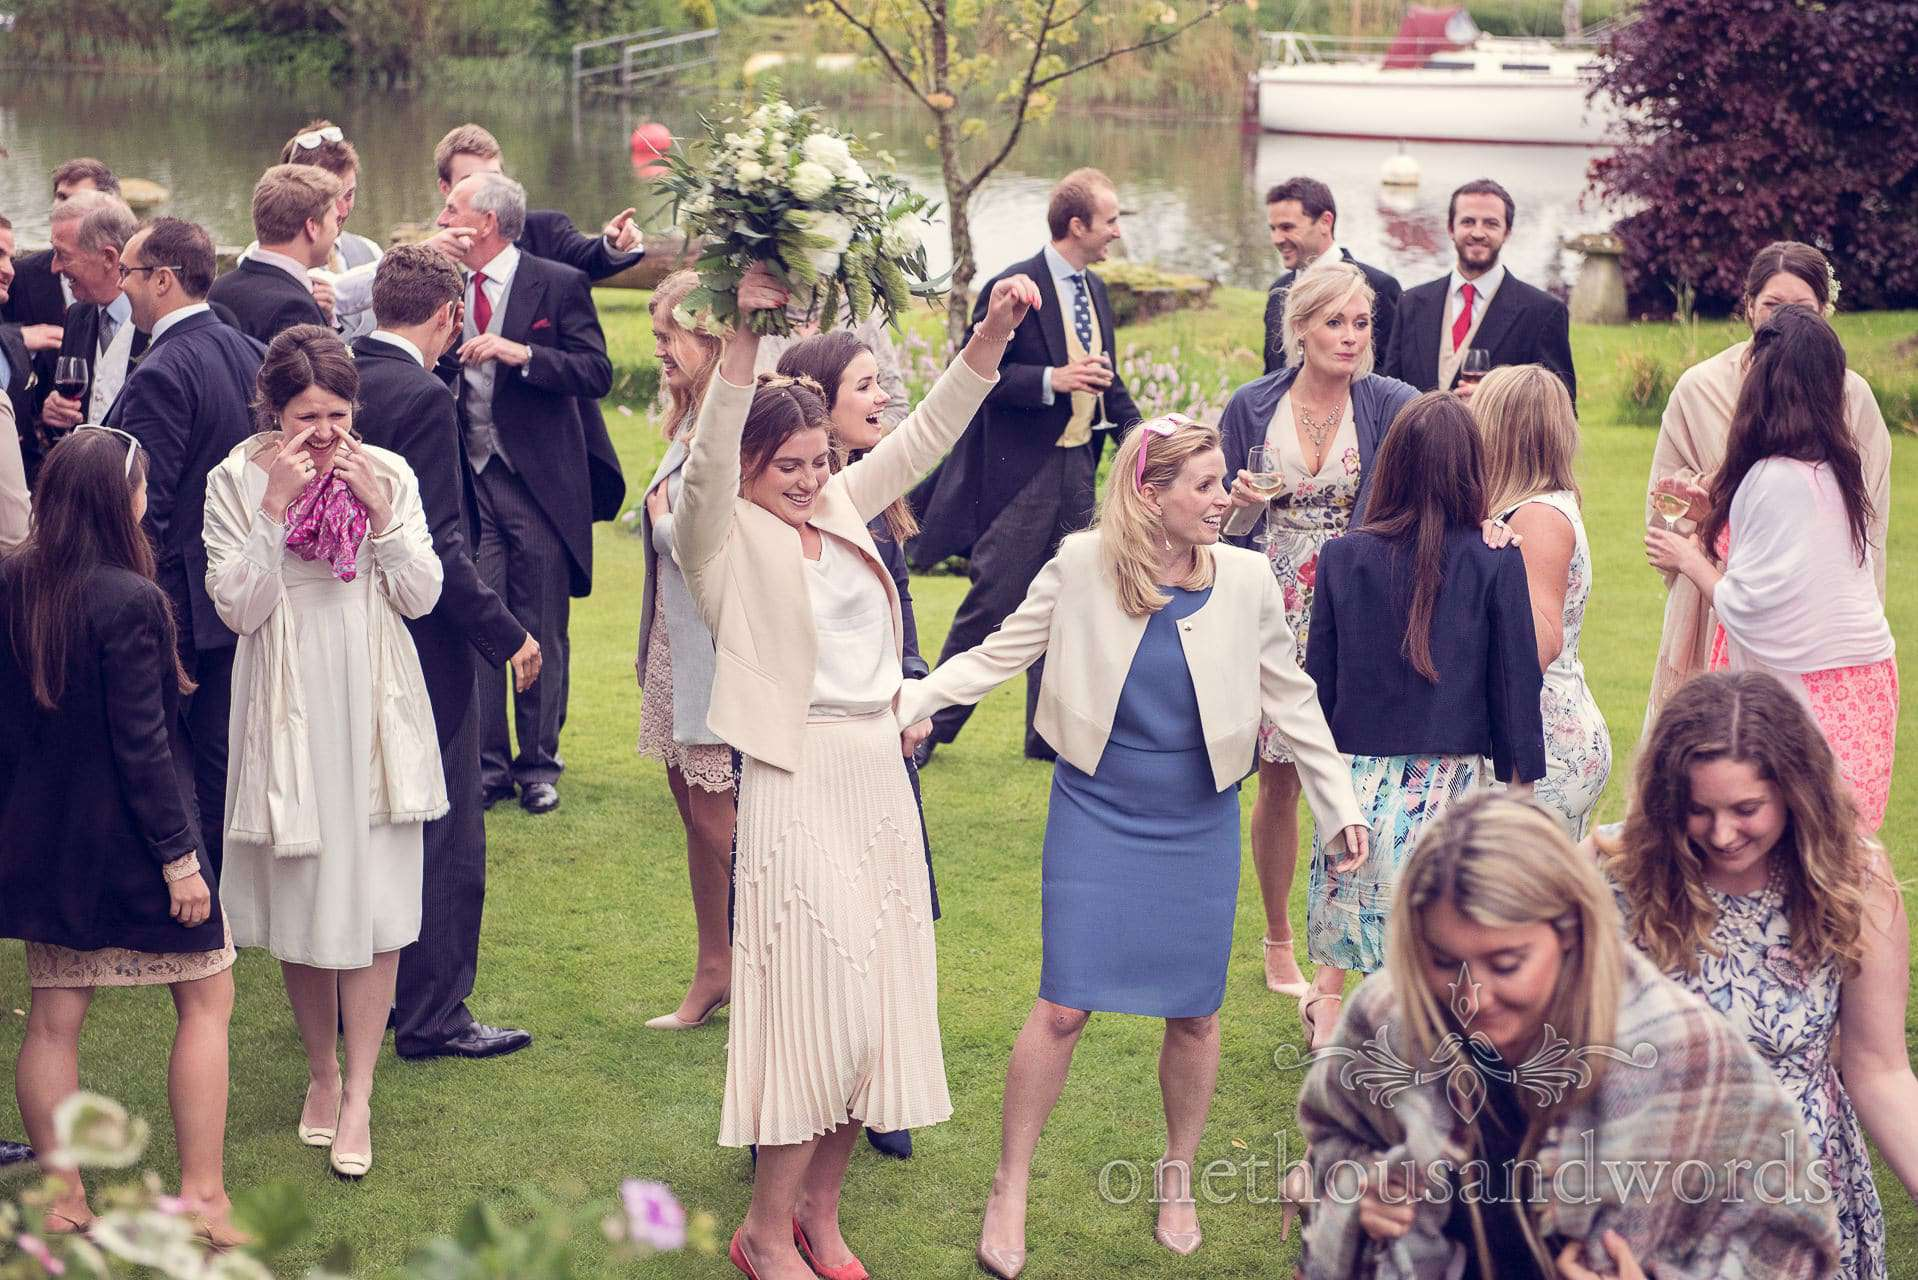 Wedding guest catches the bouquet at The Priory Wareham wedding